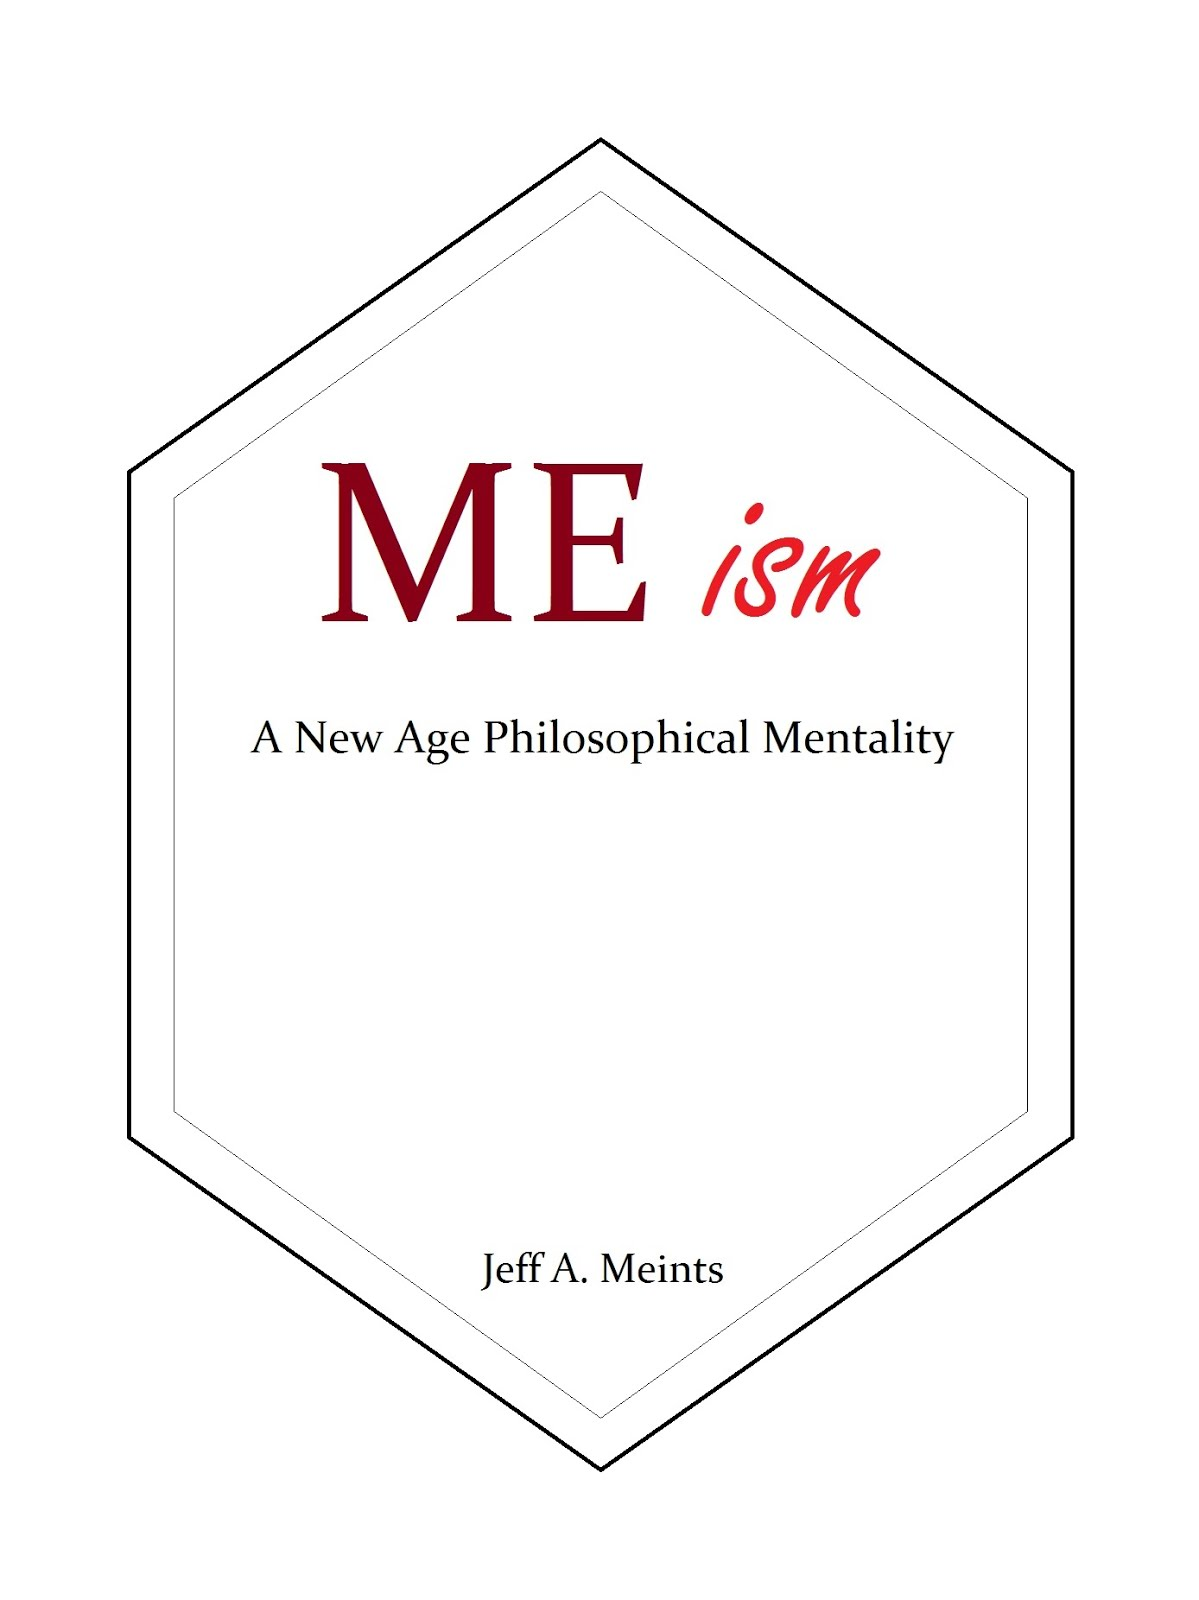 Amazon Link to the book: MEism - A New Age Philosophical Mentality